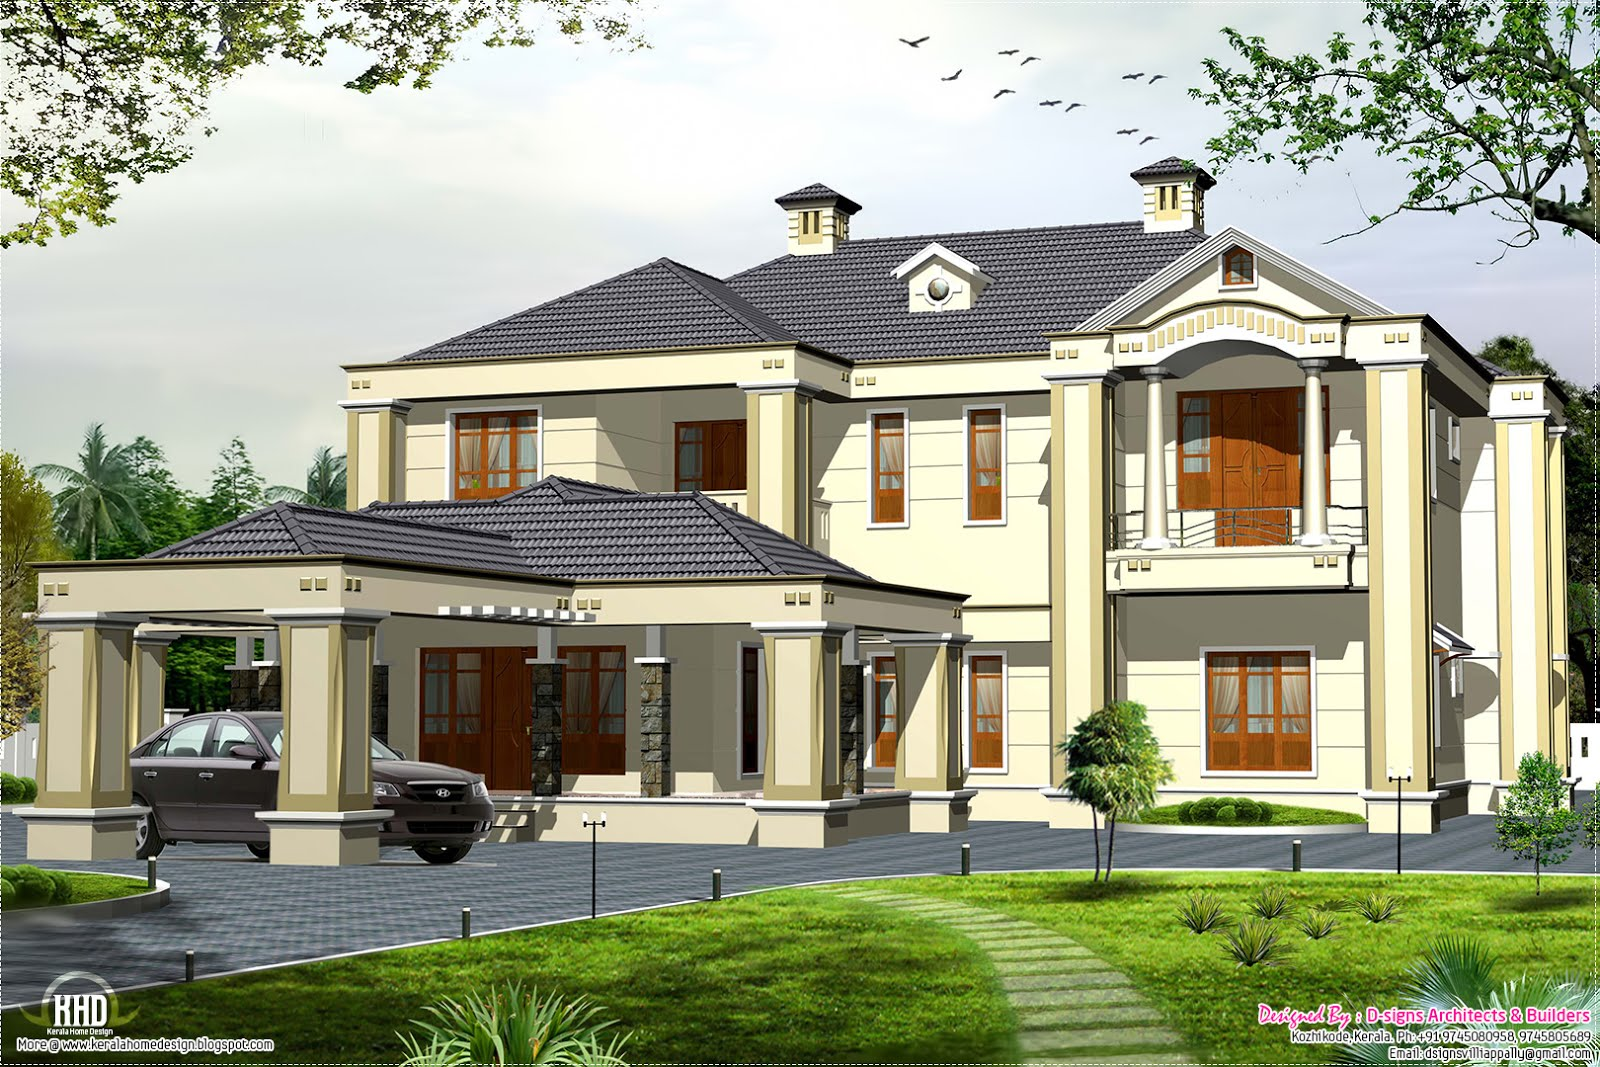 colonial house plans online image house plans colonial house floor plans colonial house plans front